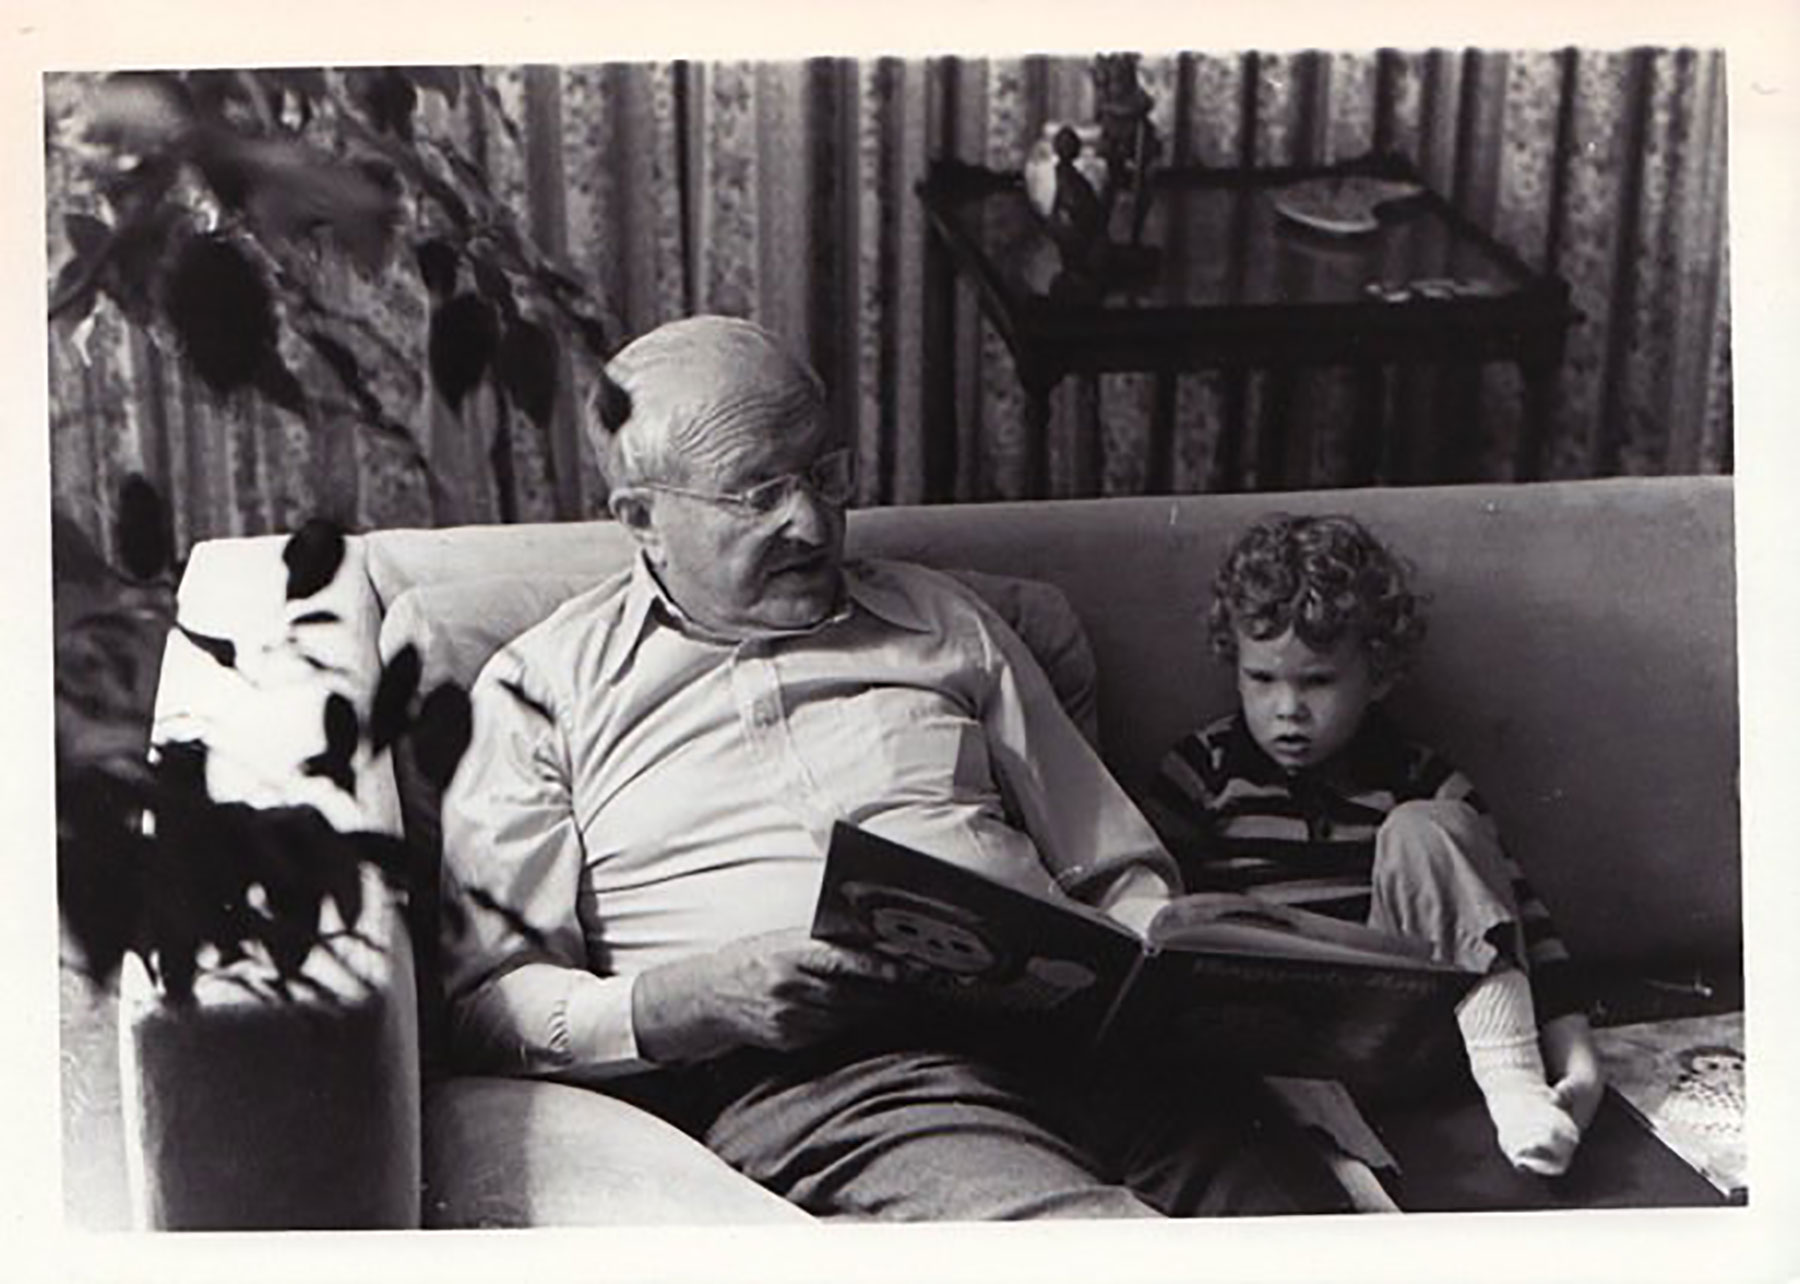 Ben as a toddler with his Grandpa Joe, who was also a veteran.